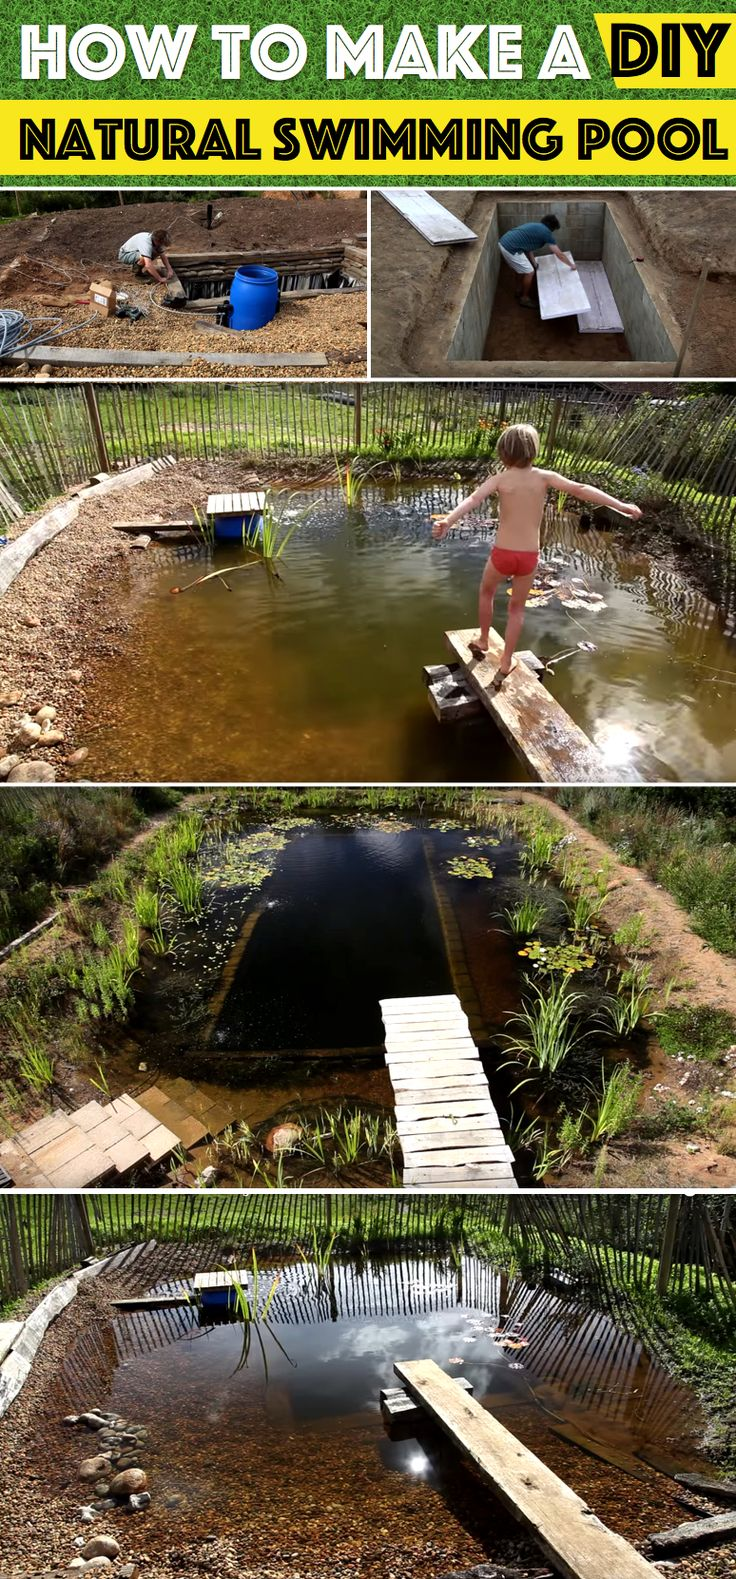 Building a natural swimming pool - 17 Best Ideas About Natural Swimming Pools On Pinterest Natural Pools Swimming Ponds And Natural Backyard Pools